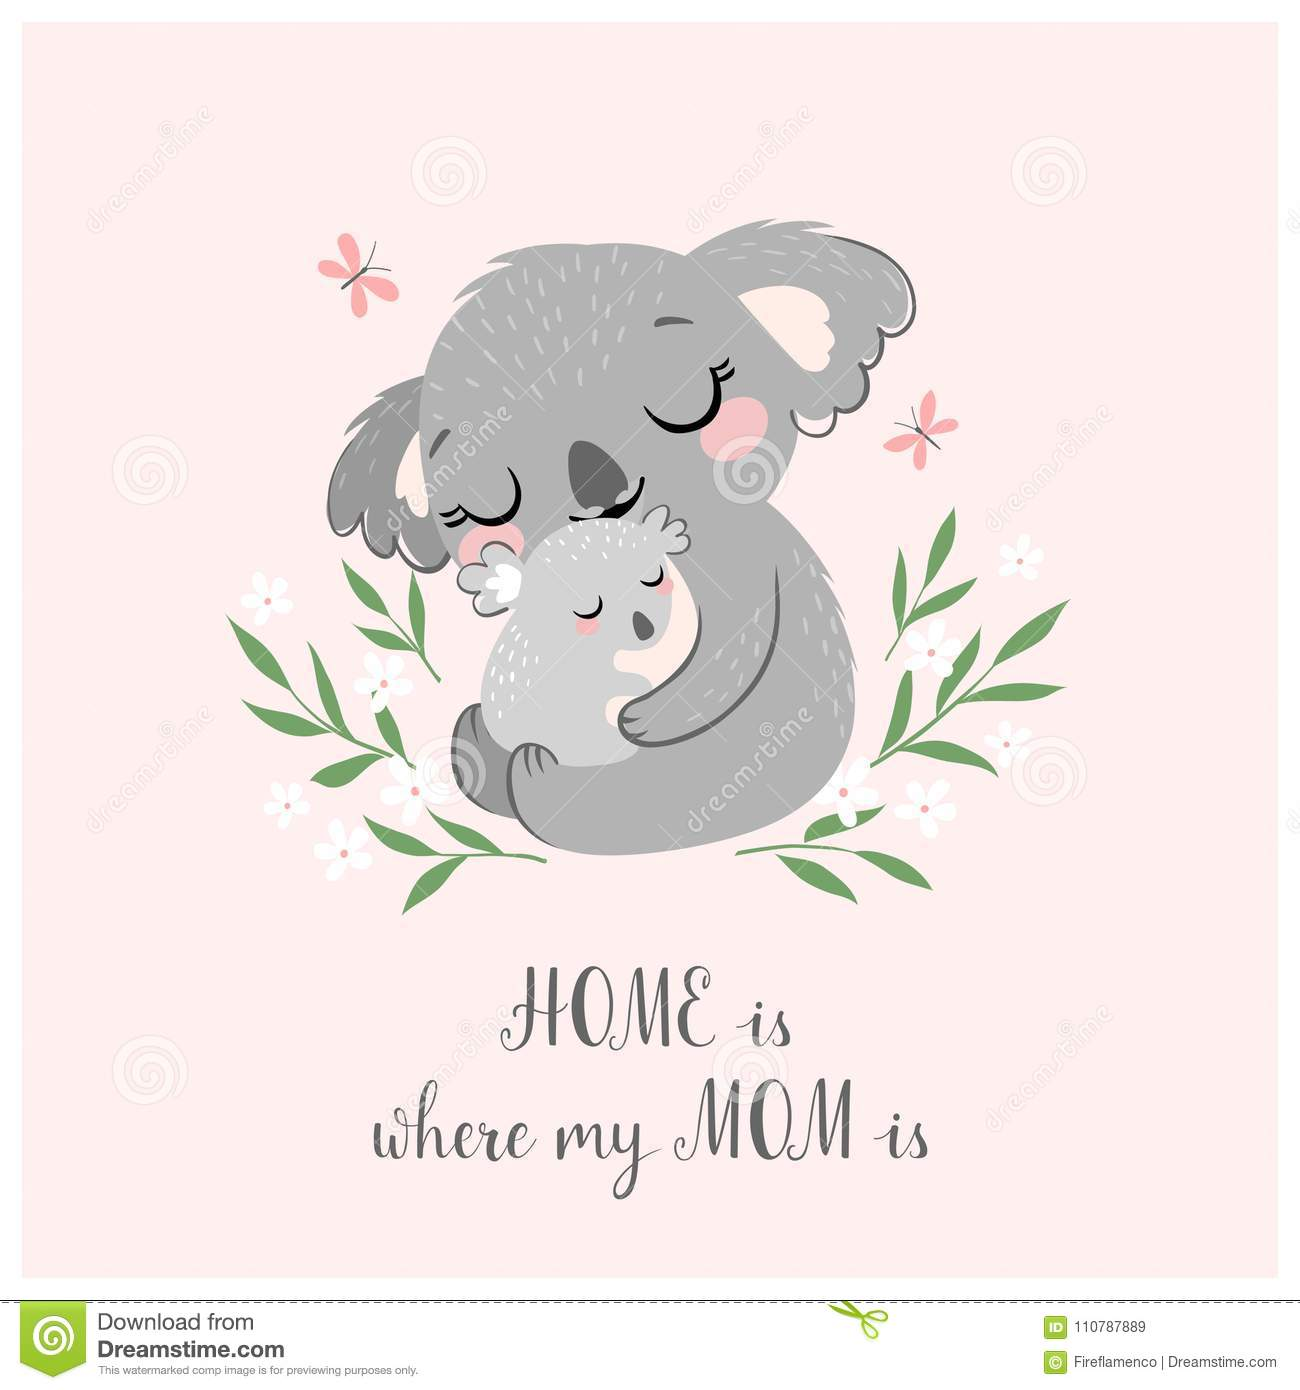 Cute Koala Mom And Baby Stock Vector Illustration Of Infant 110787889